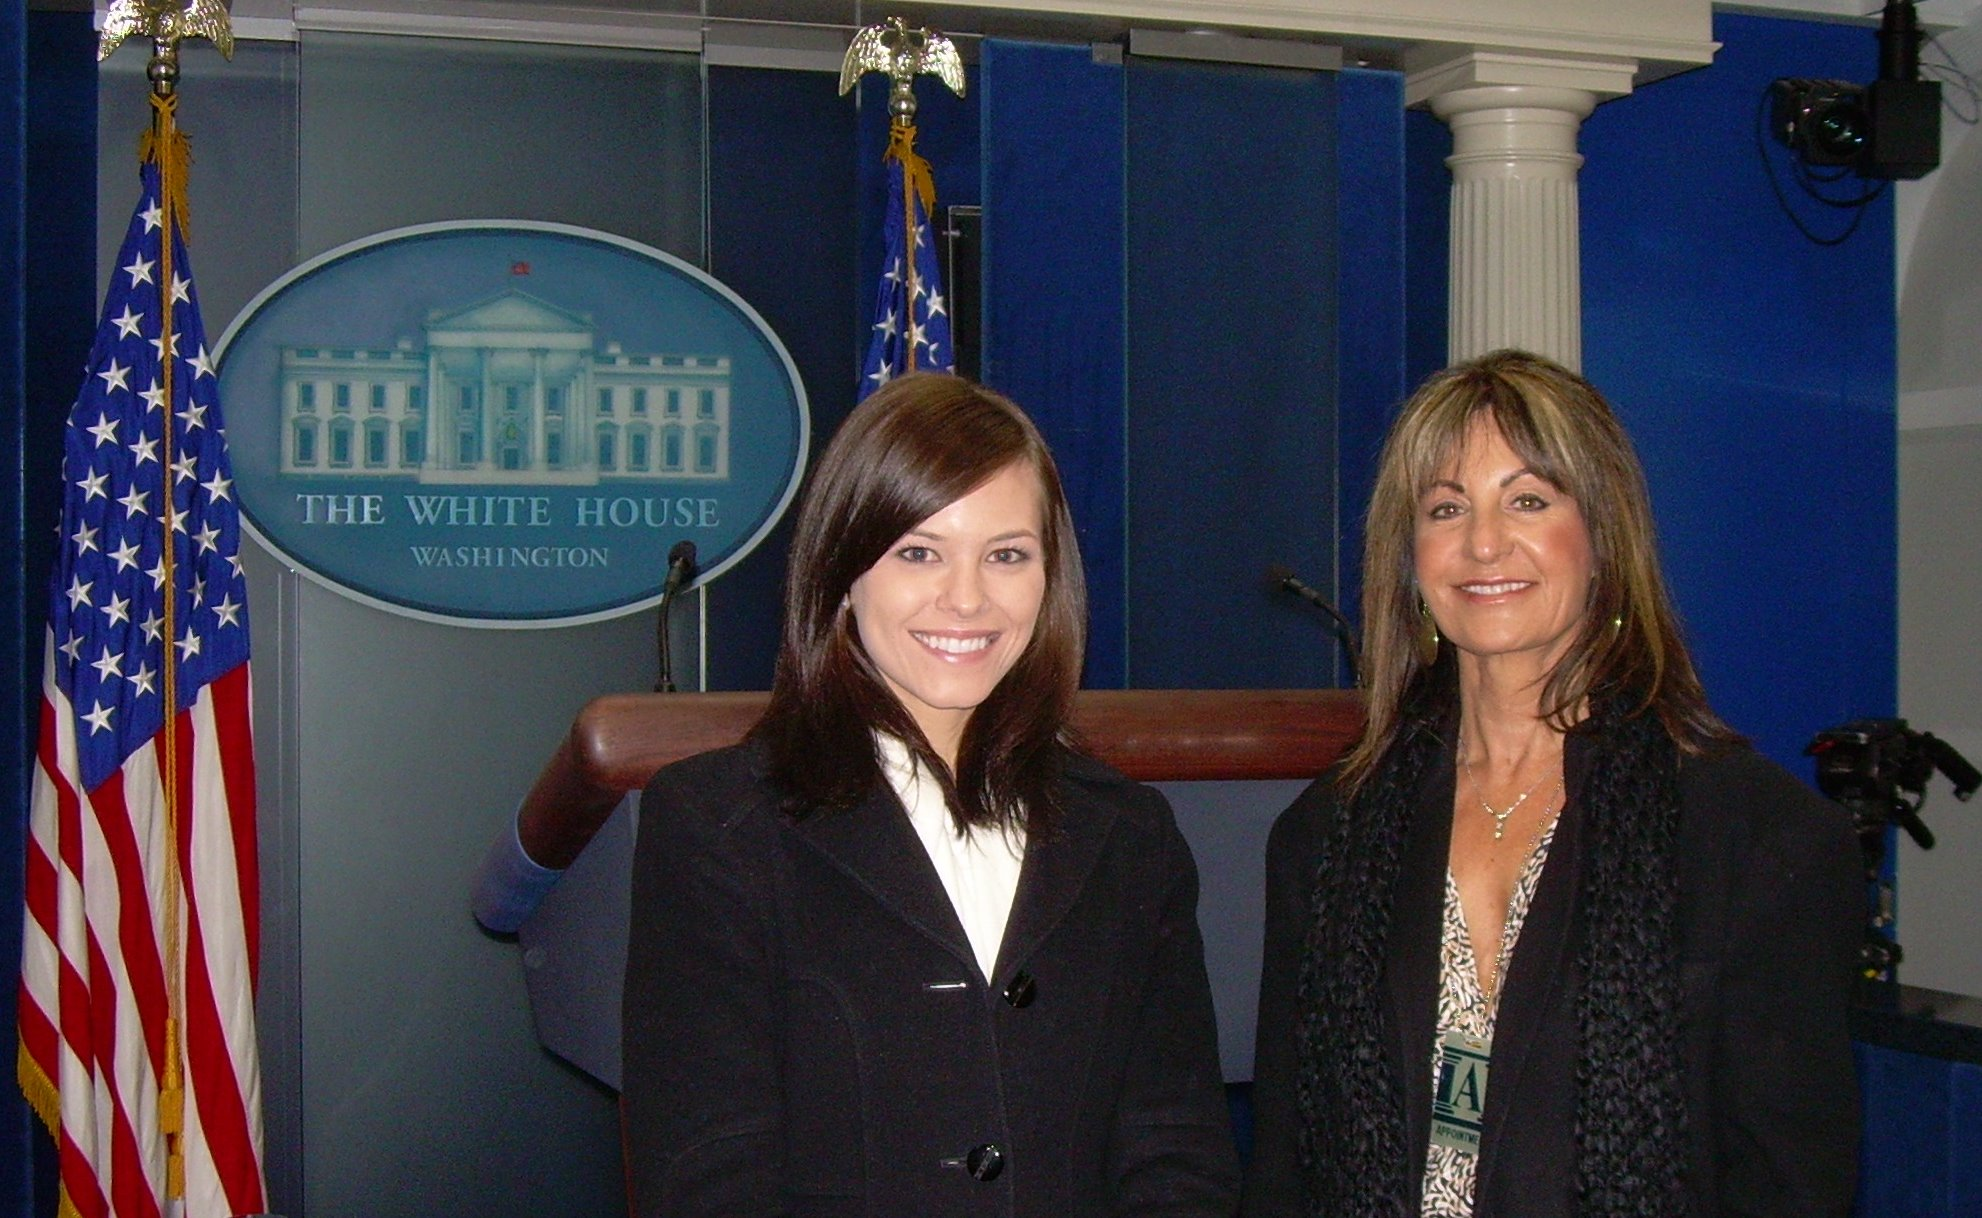 Chelsea Clouatre and Dr. Synovitz in DC